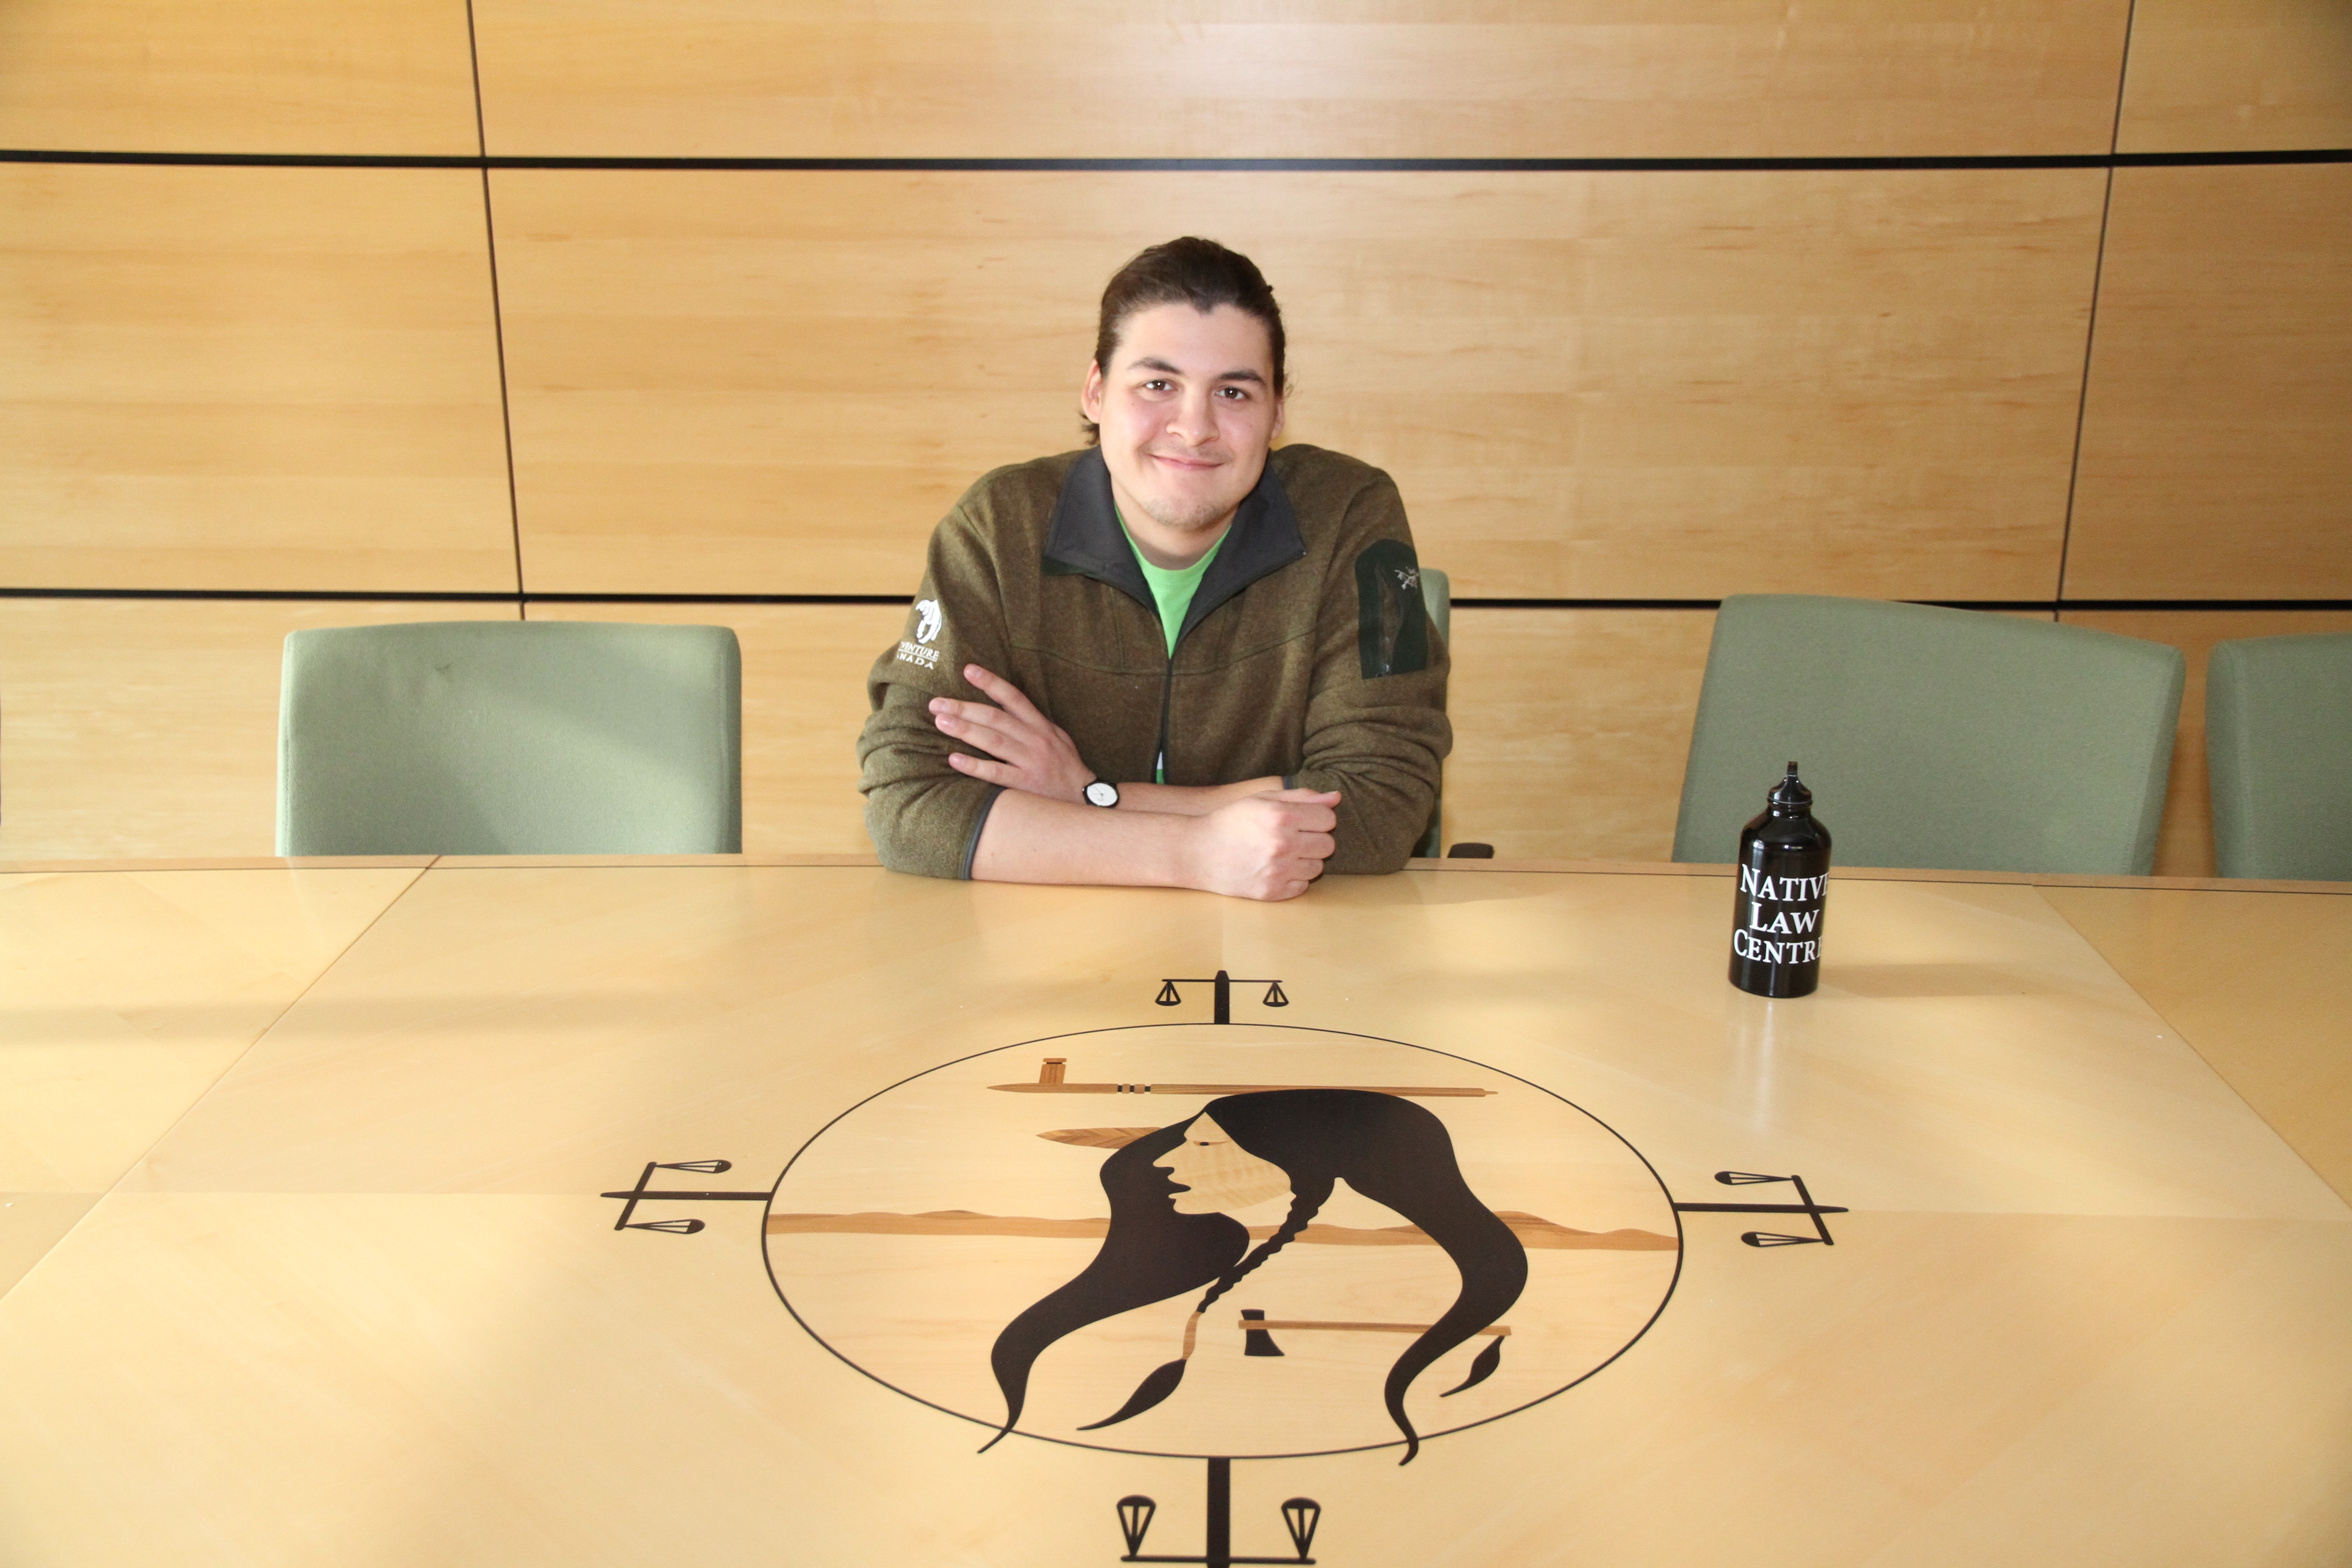 Inuit students happy to have JD program - College of Law